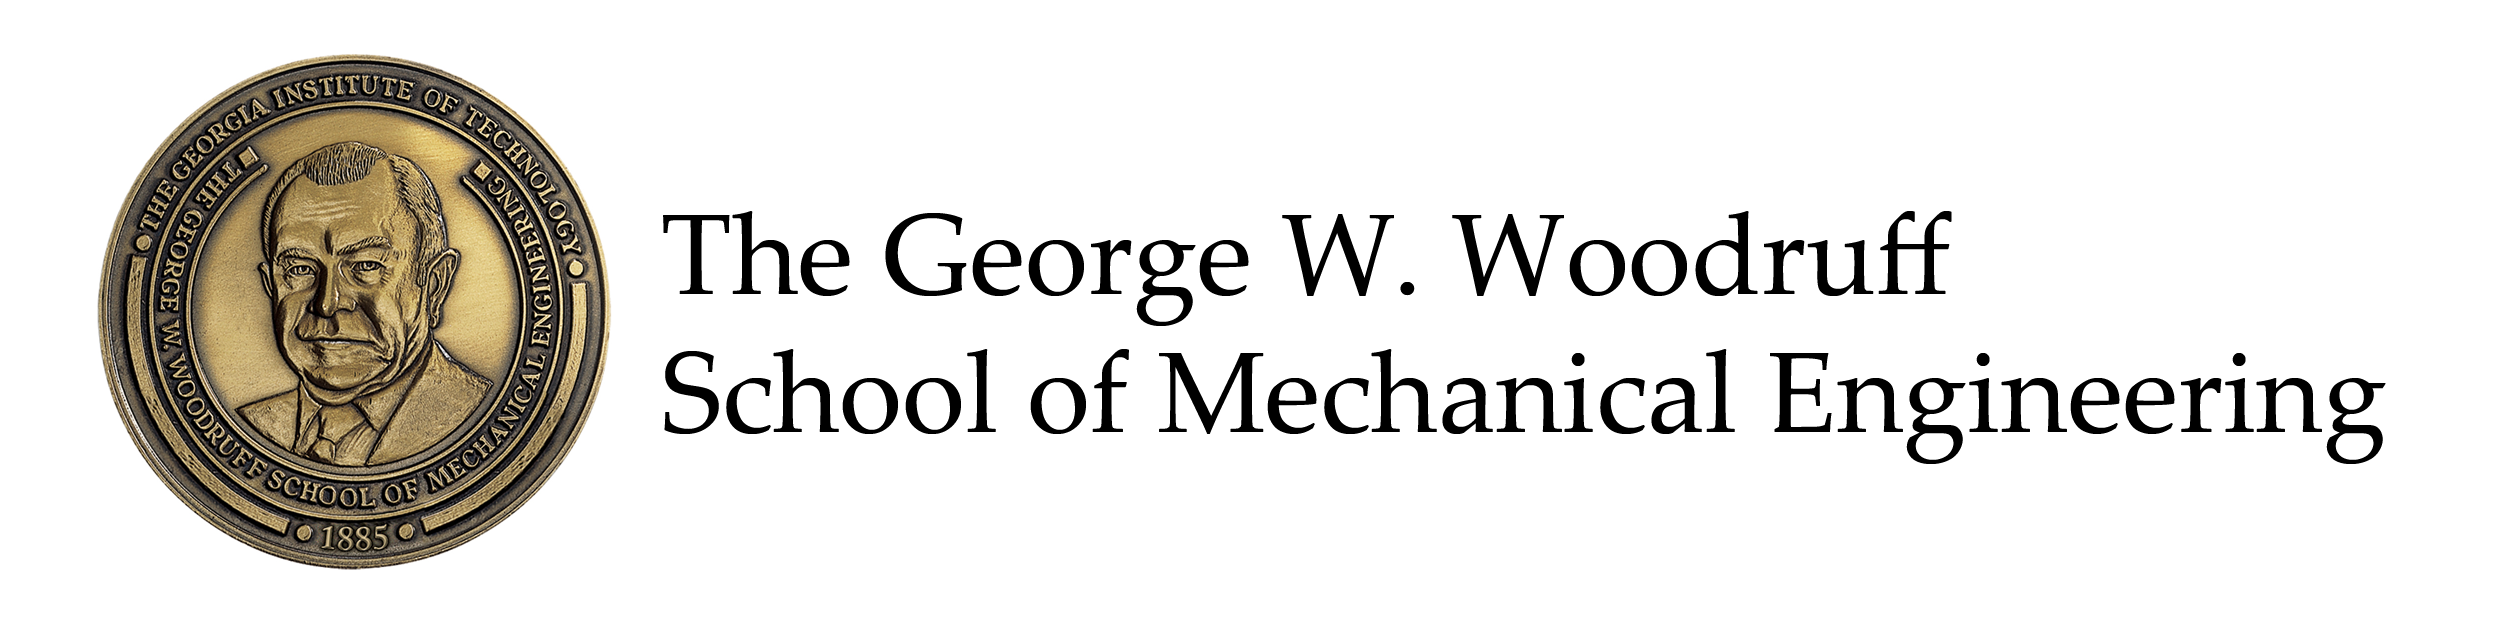 School of Mechanical Engineering